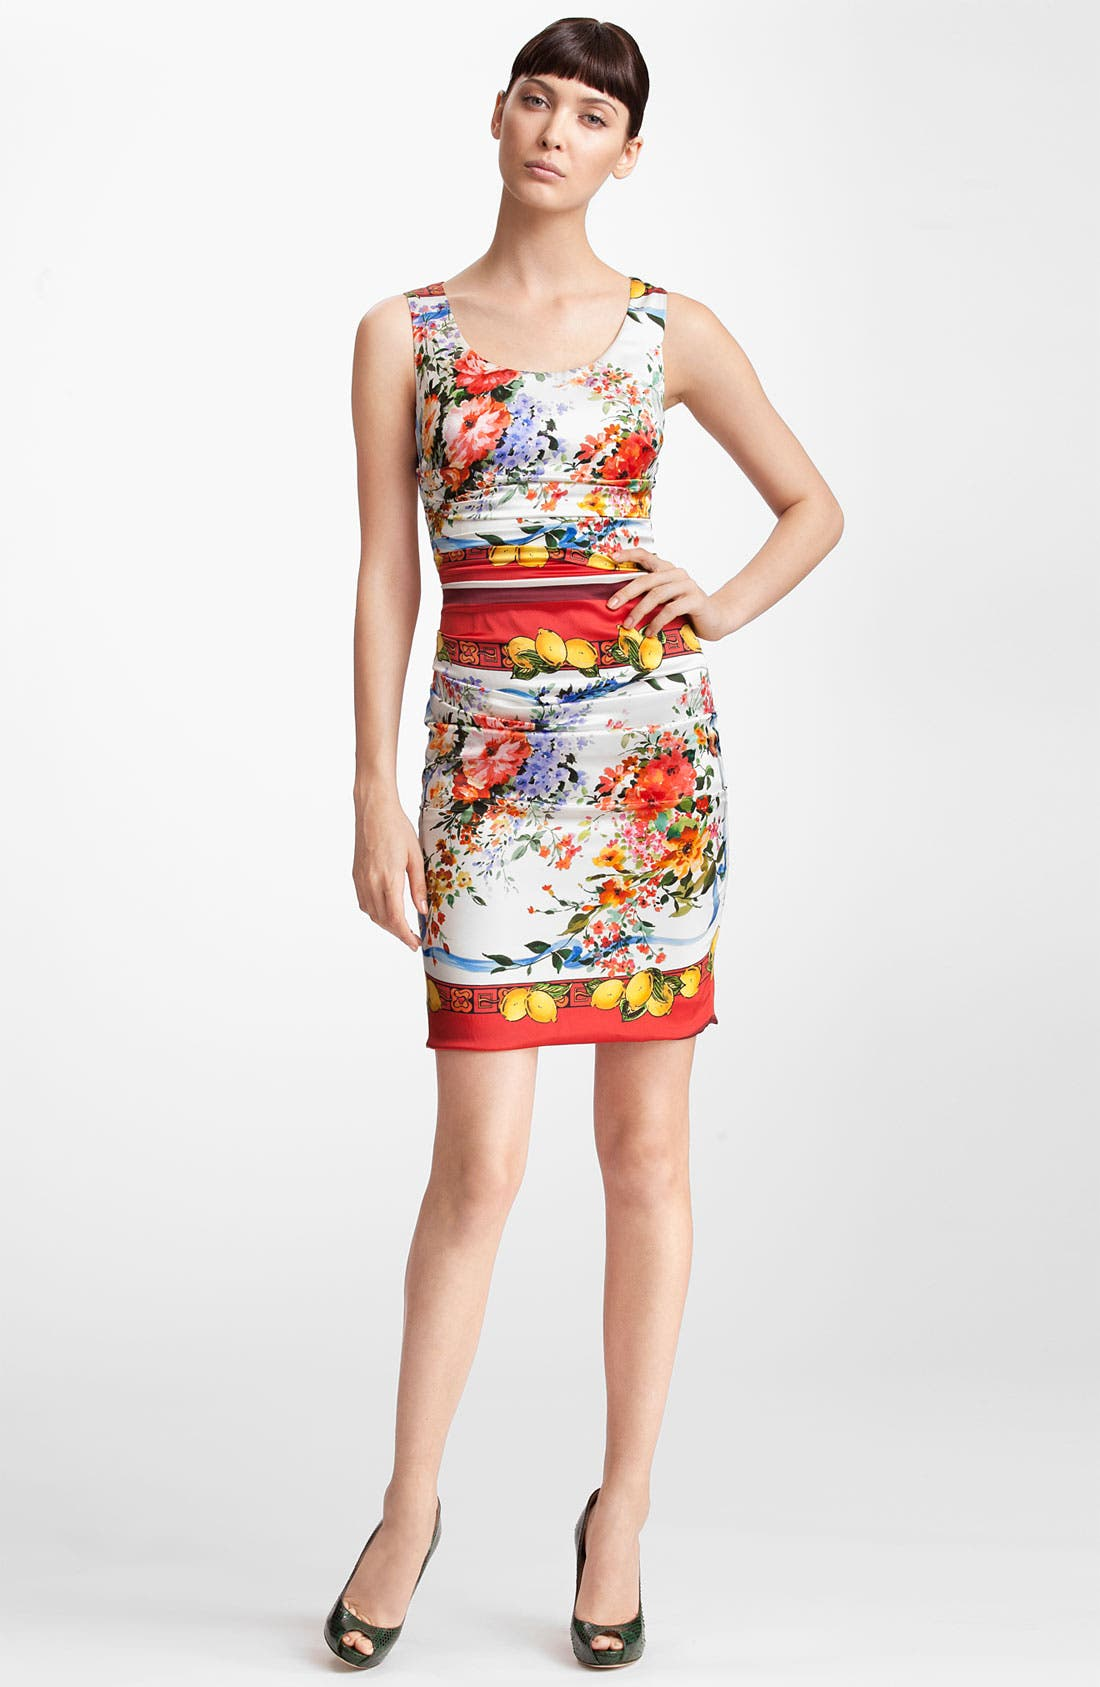 Main Image - Dolce&Gabbana Floral Print Stretch Satin Dress